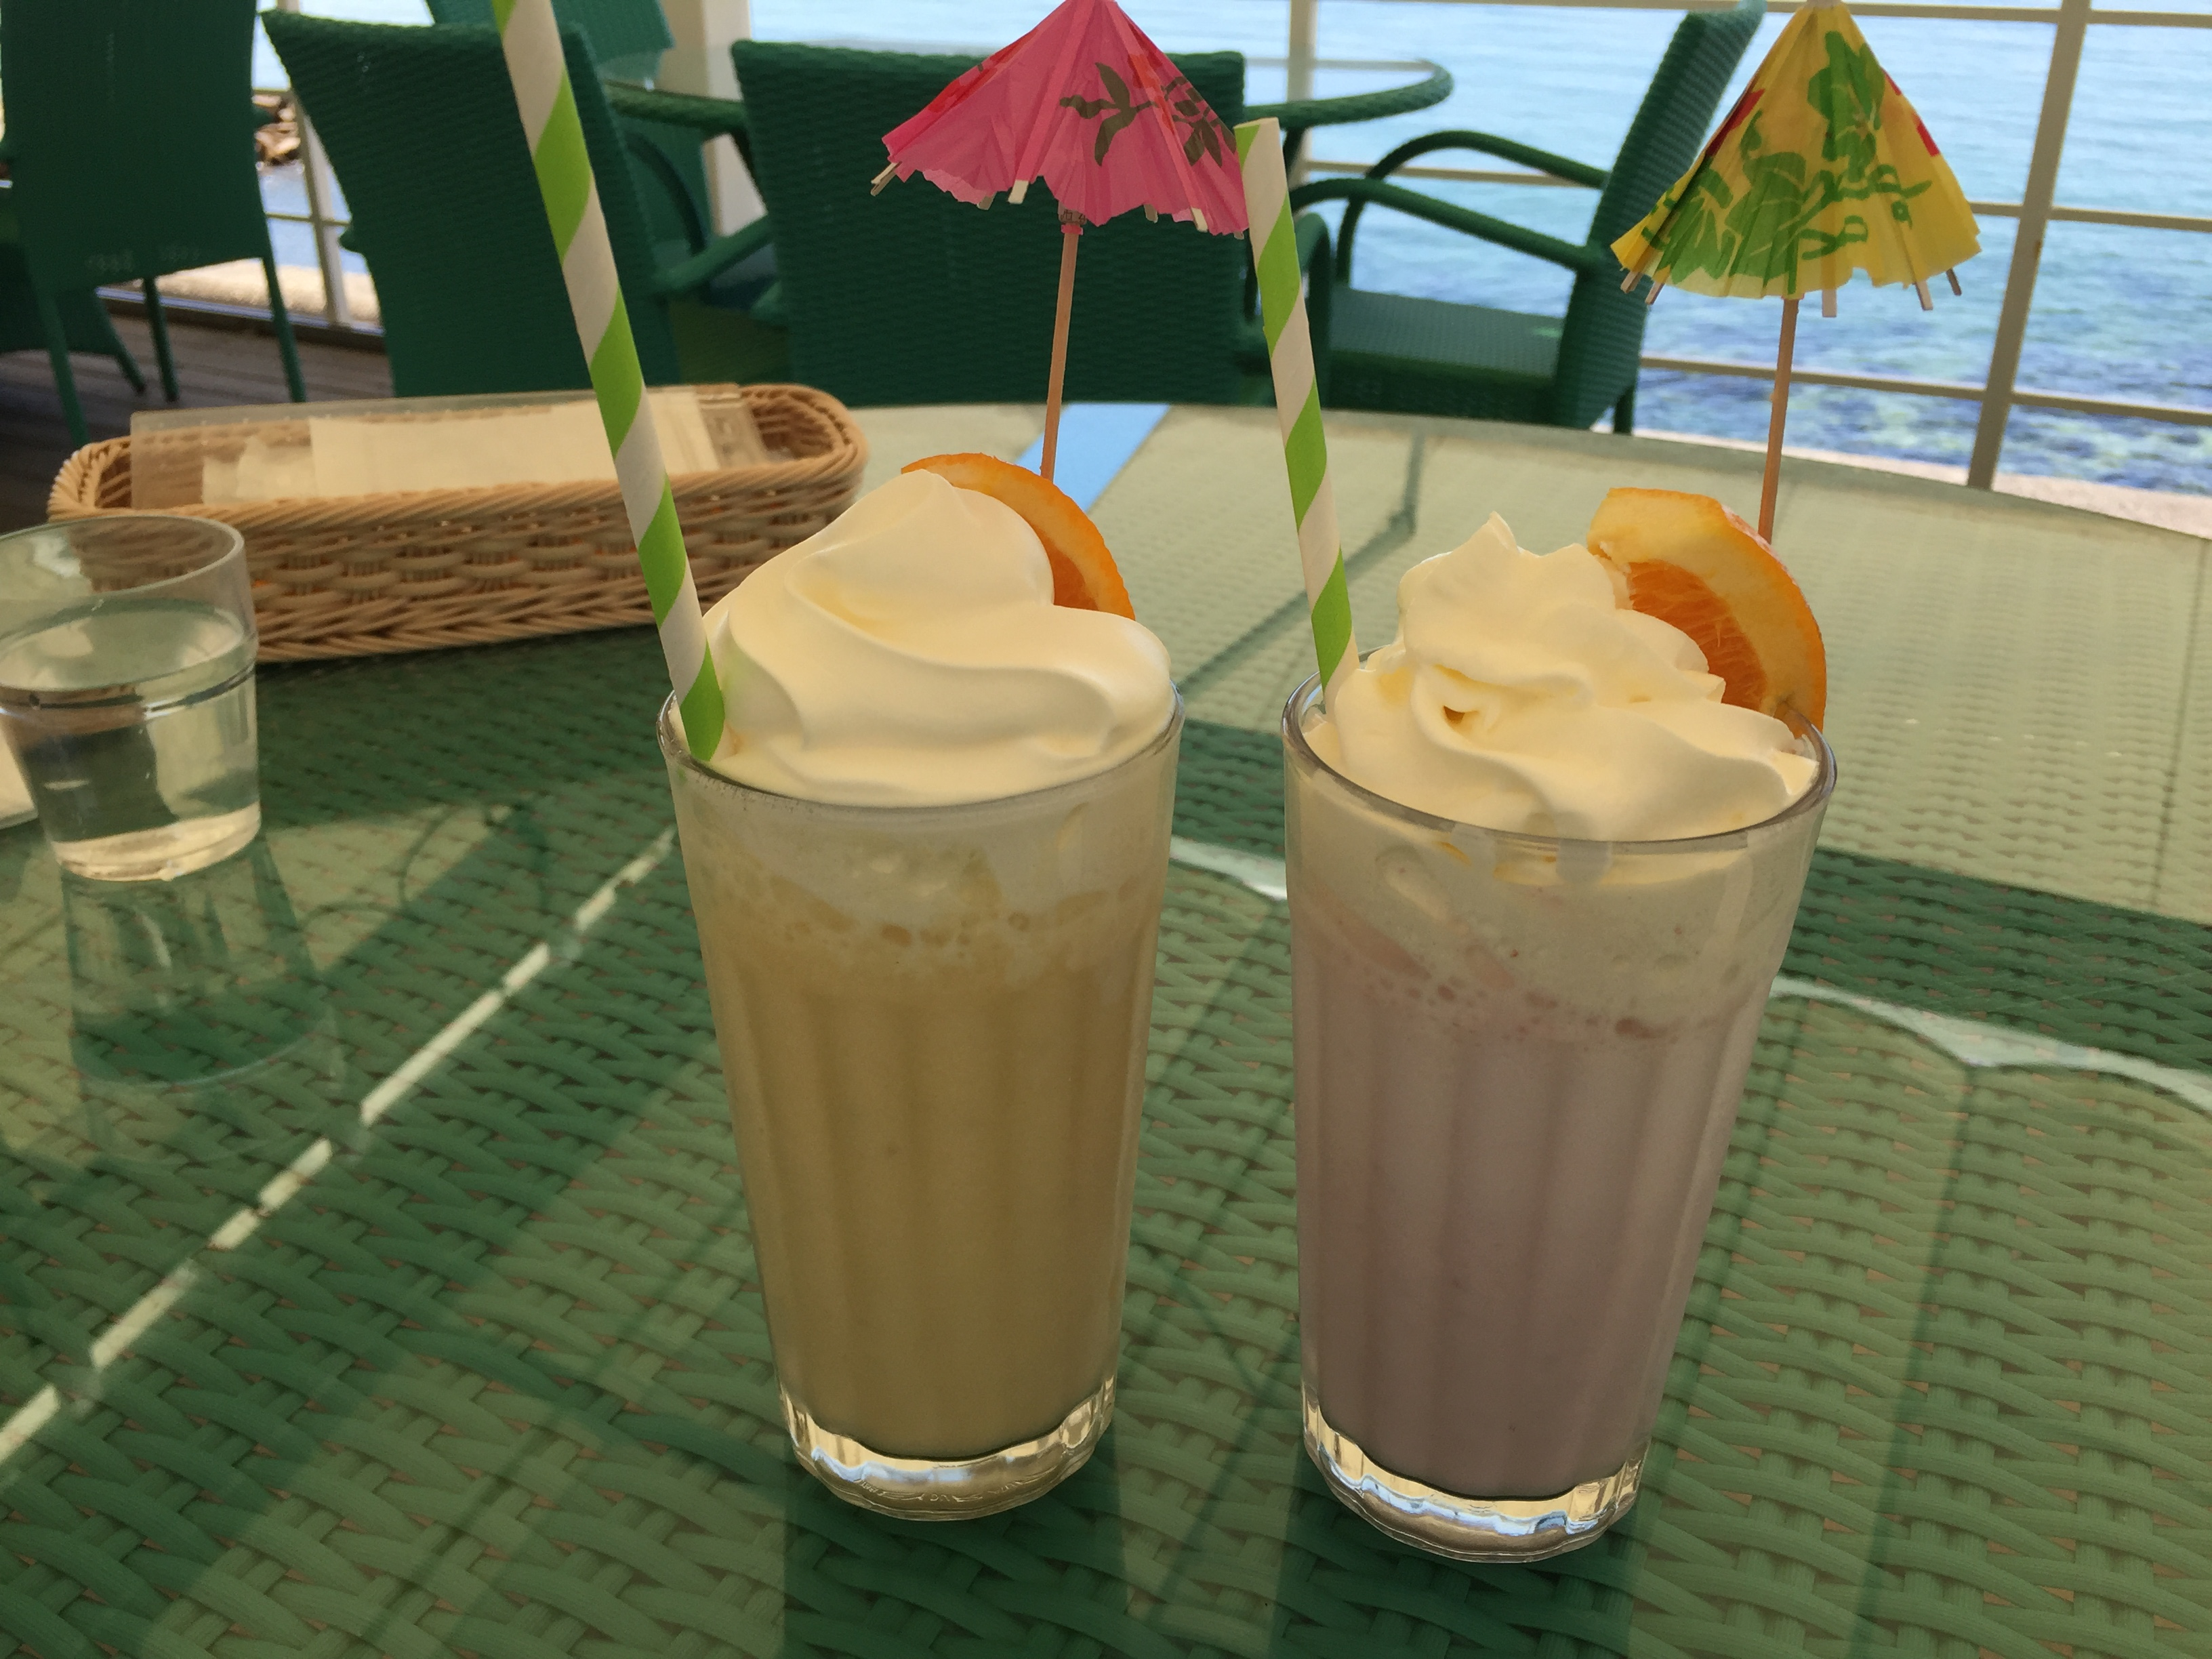 Flavored milk on Awaji with a rich whipping cream.